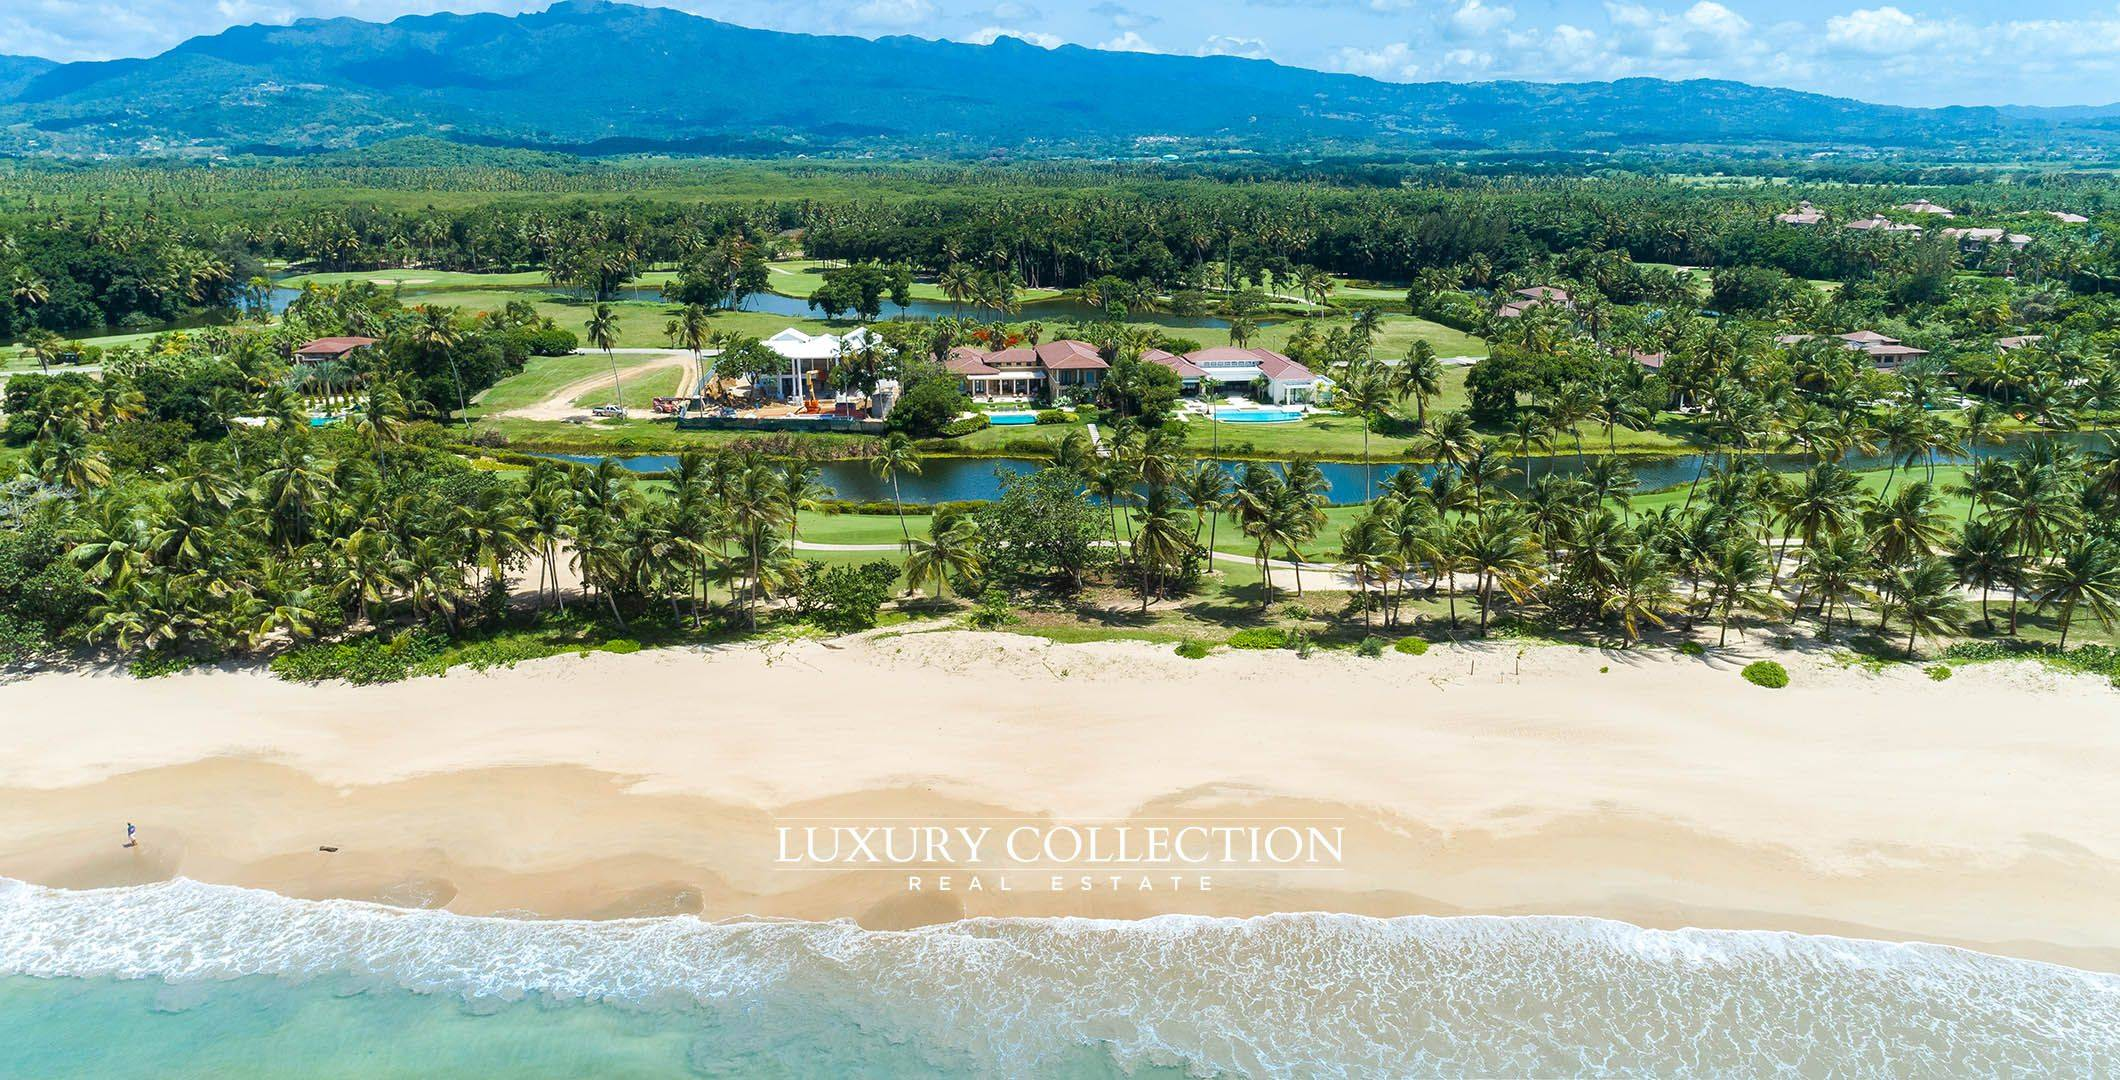 Home luxury collection real estate for Luxury home collection